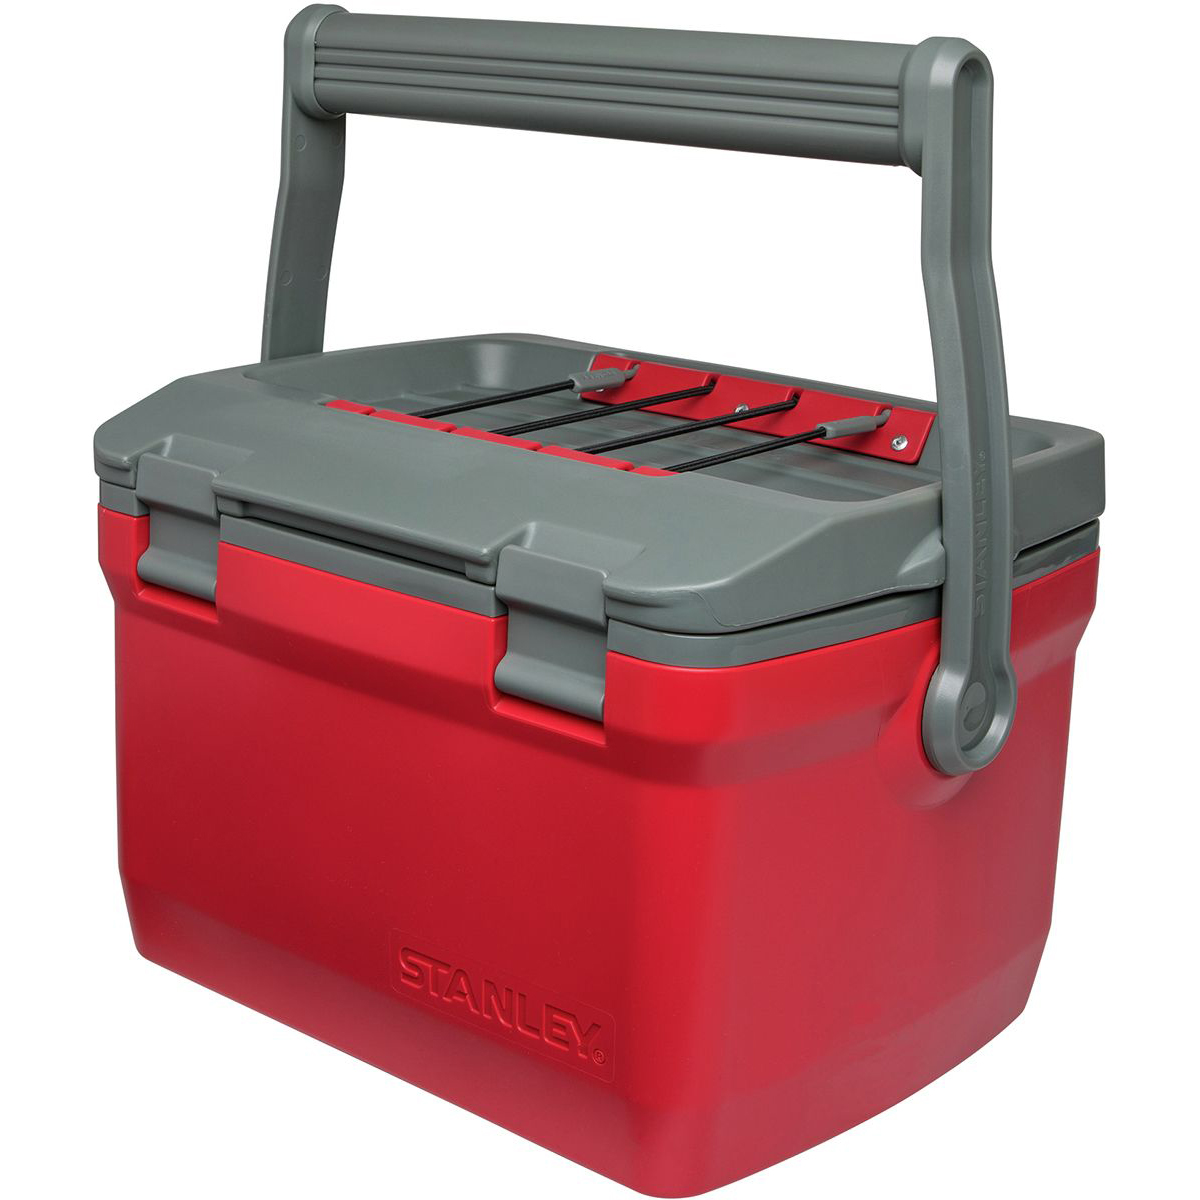 Stanley-Adventure-7-qt-Easy-Carry-Foam-Insulated-Outdoor-Cooler thumbnail 6